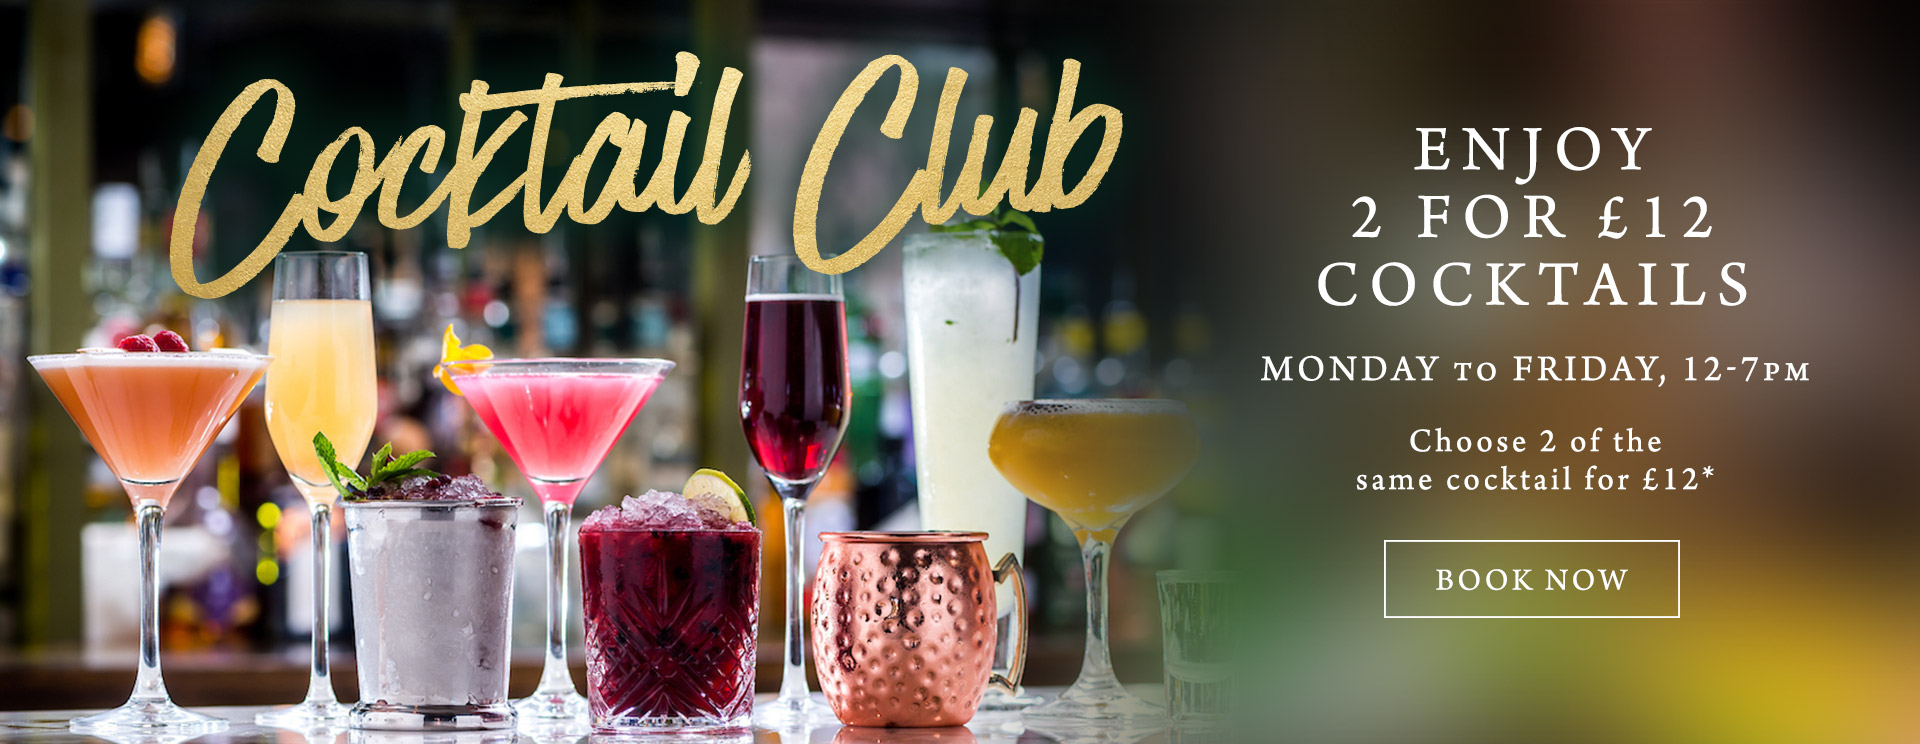 2 for £12 cocktails at The Inn at Maybury